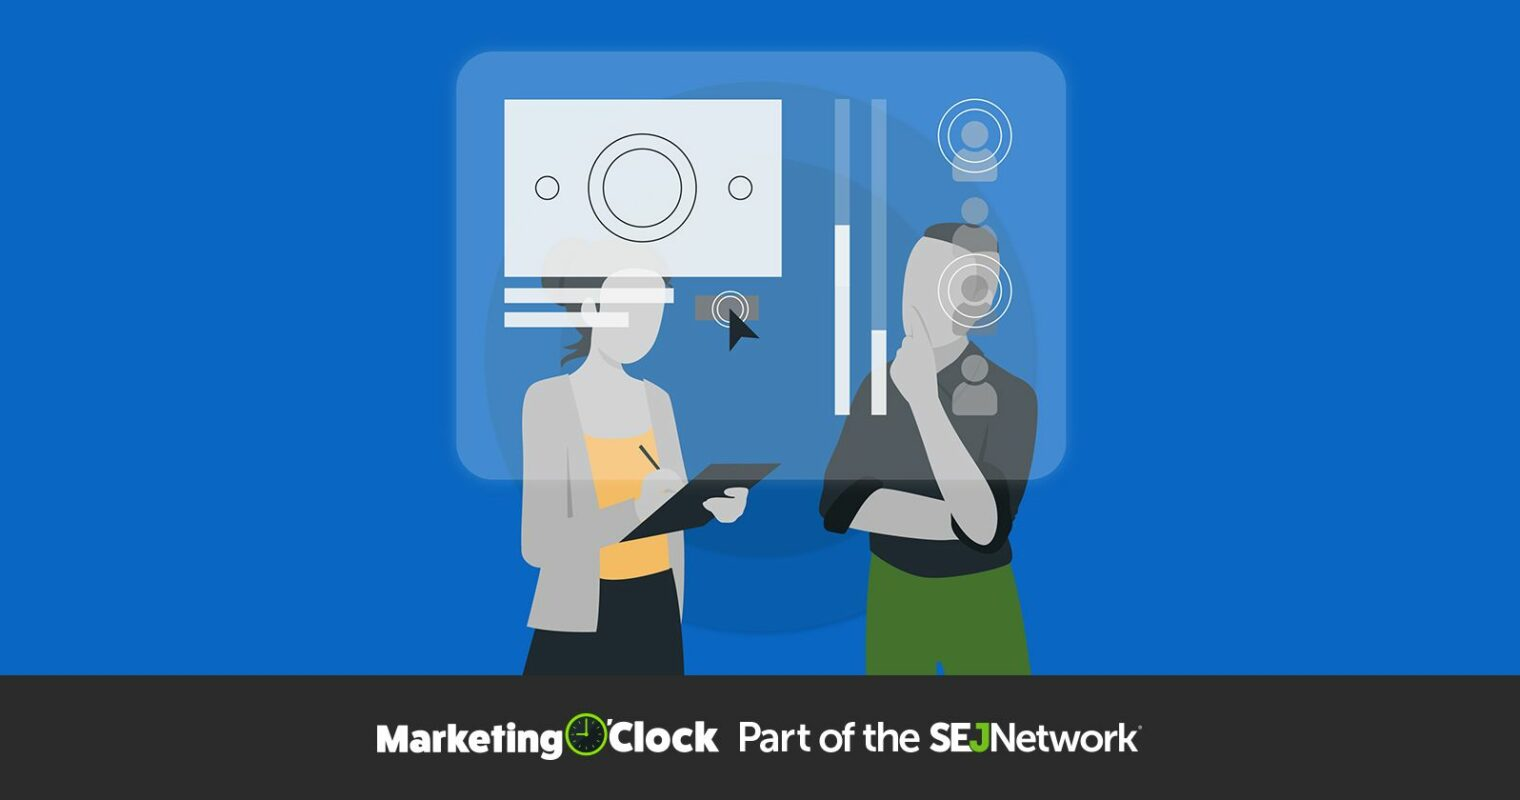 LinkedIn's New Company Engagement Report & This Week's Digital Marketing News [PODCAST]